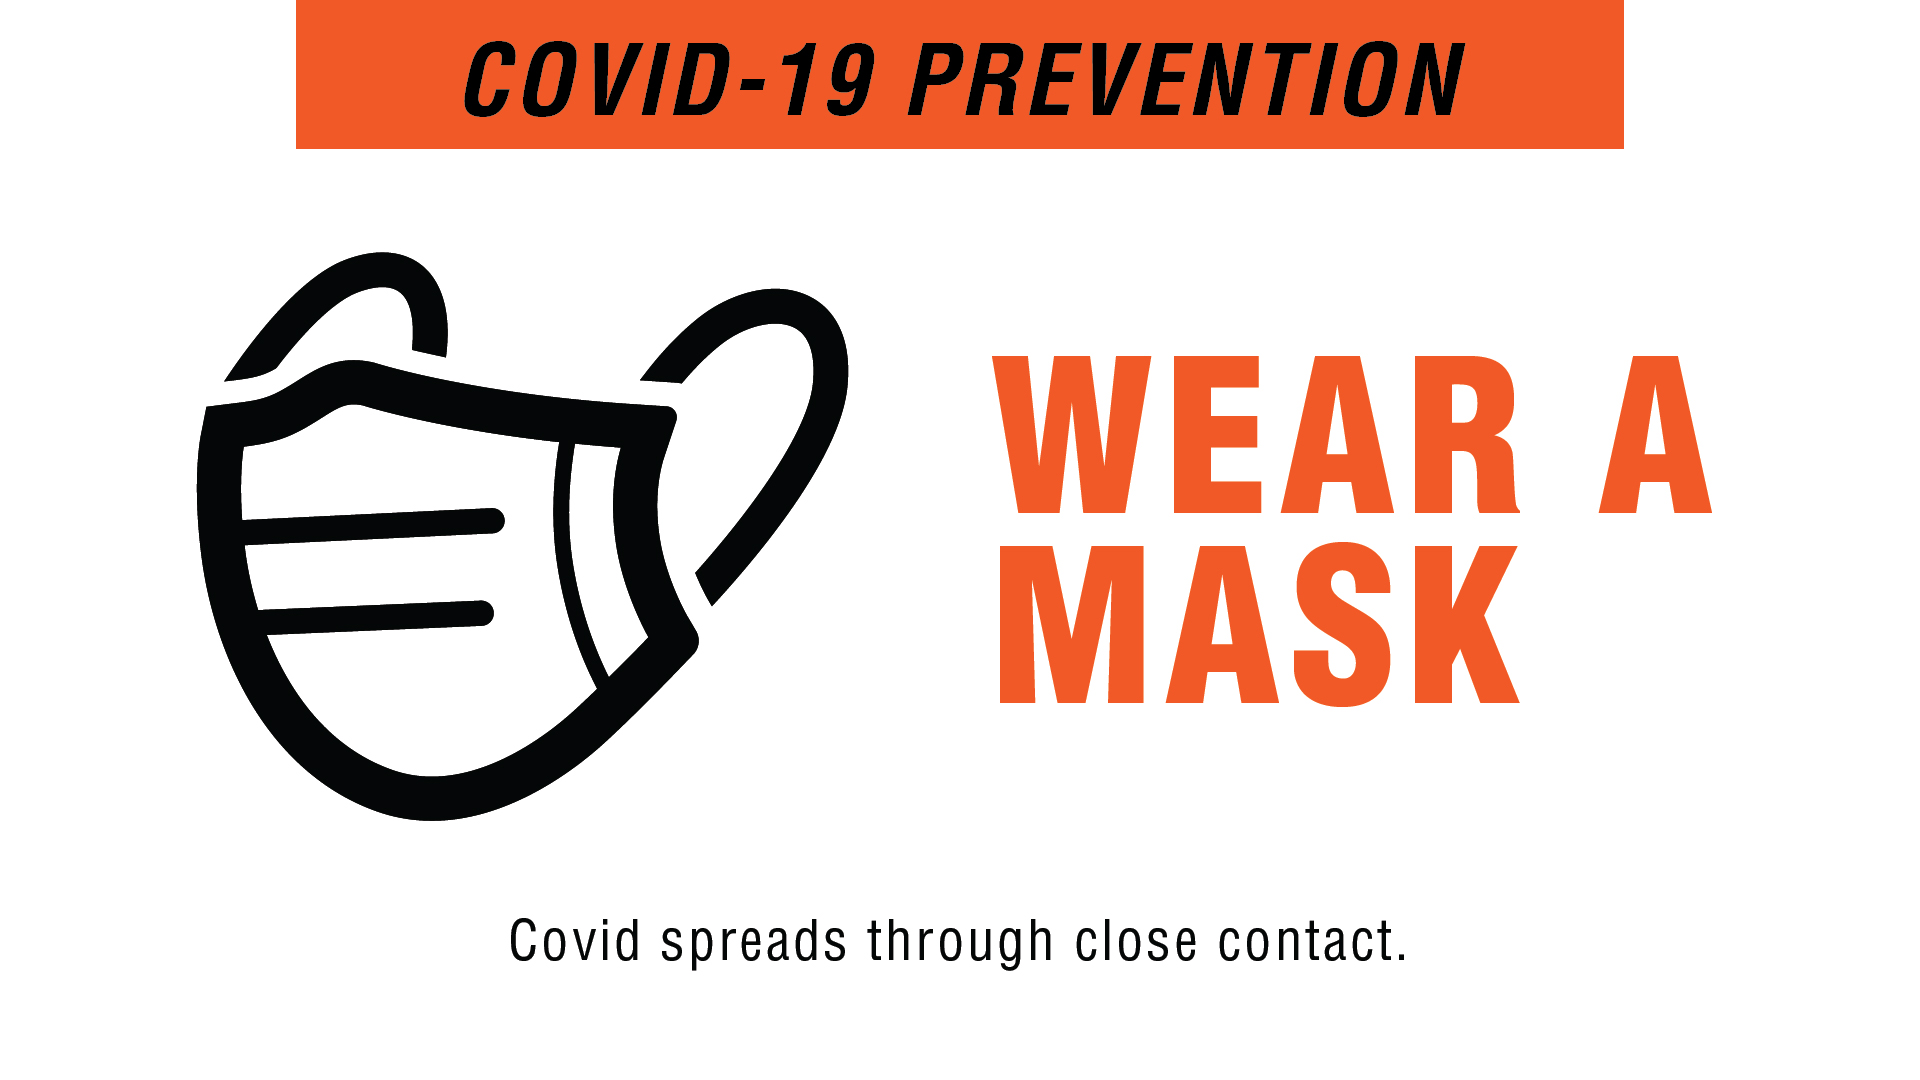 Covid-19 Prevention - Wear A Mask Digital Signage Image